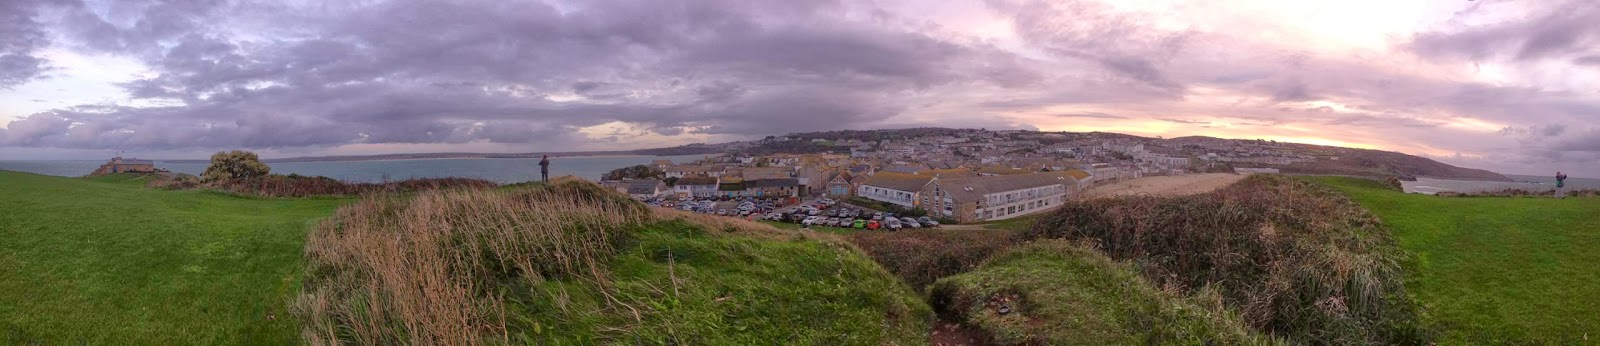 View of the whole of St. Ives from on top of the hill. The majority of the town can be seen along with one of the sandy beaches